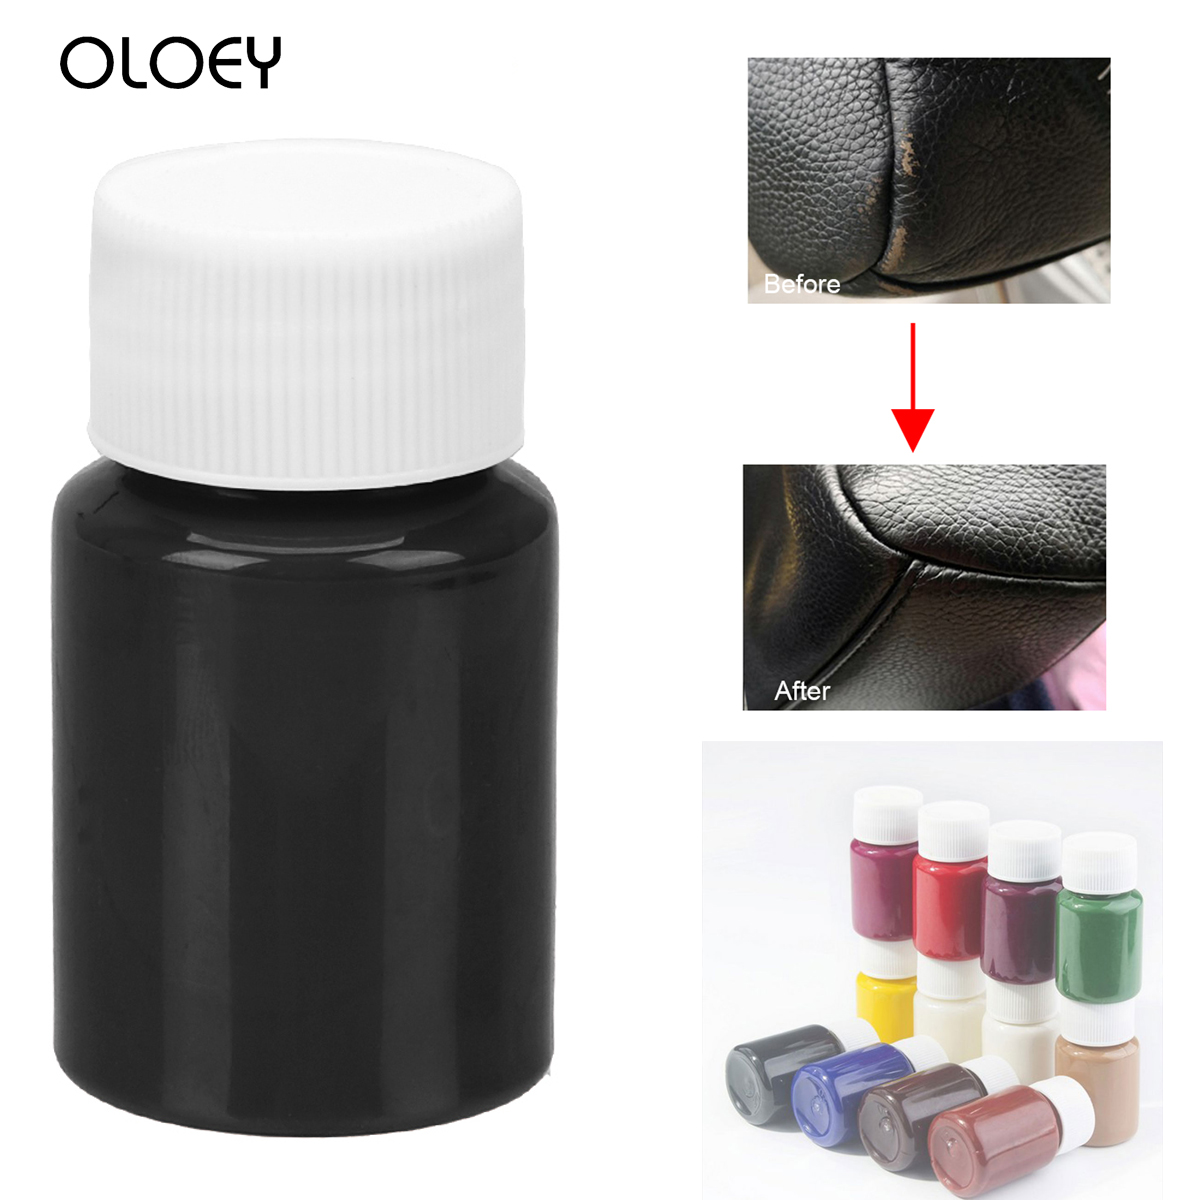 OLOEY 60ml Leather Repair Tool Car Seat Sofa Coats No Heat Liquid Leather And Vinyl Restorer Holes Scratch Cracks Universal